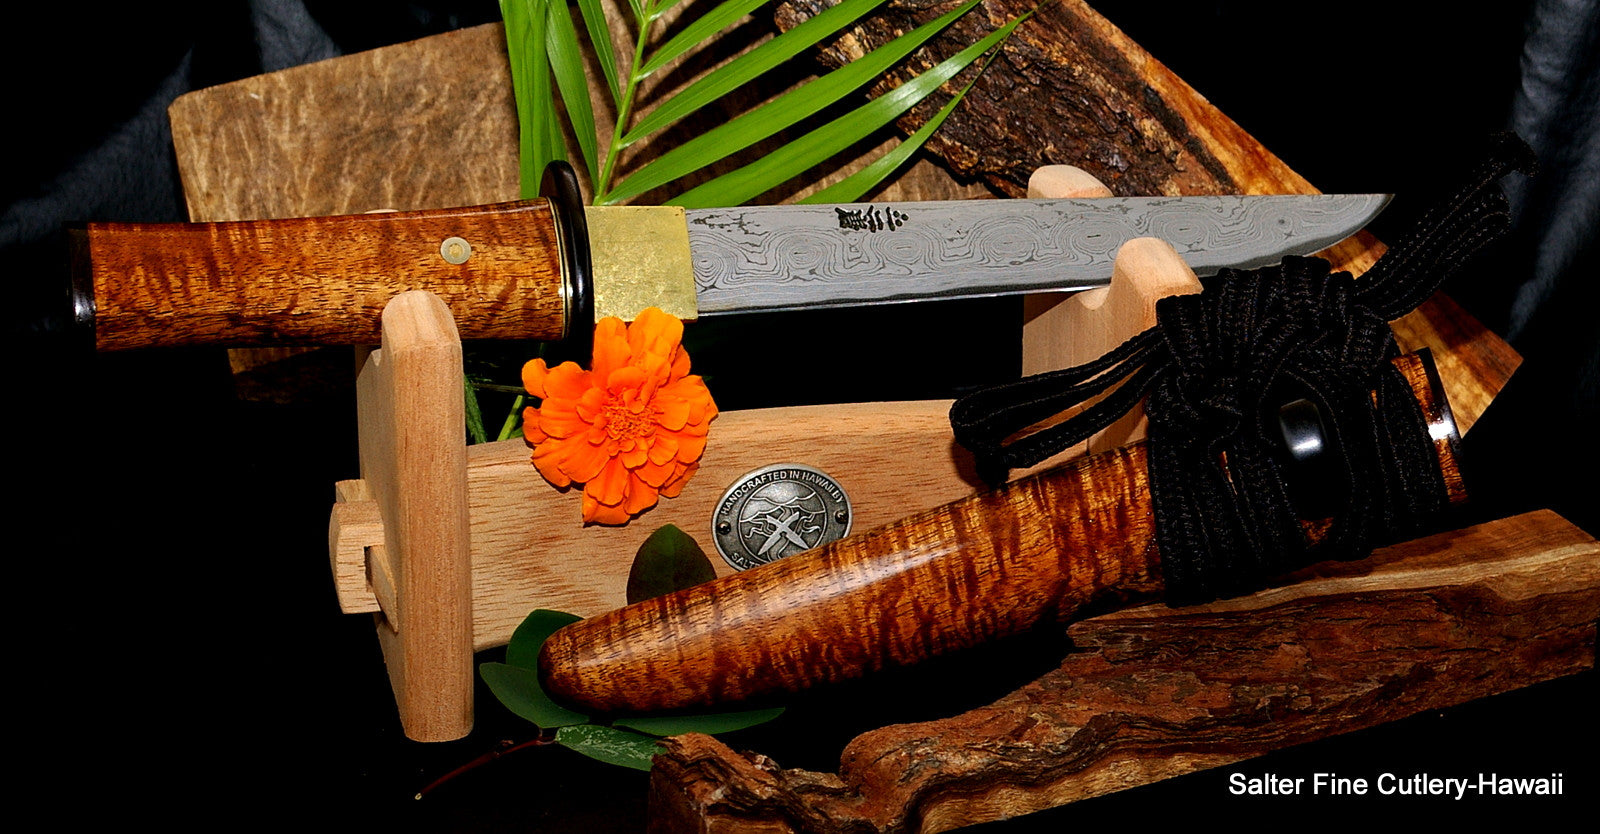 210mm Collectible custom hunting knife with Japanese style handle, sheath and work stand by Salter Fine Cutlery